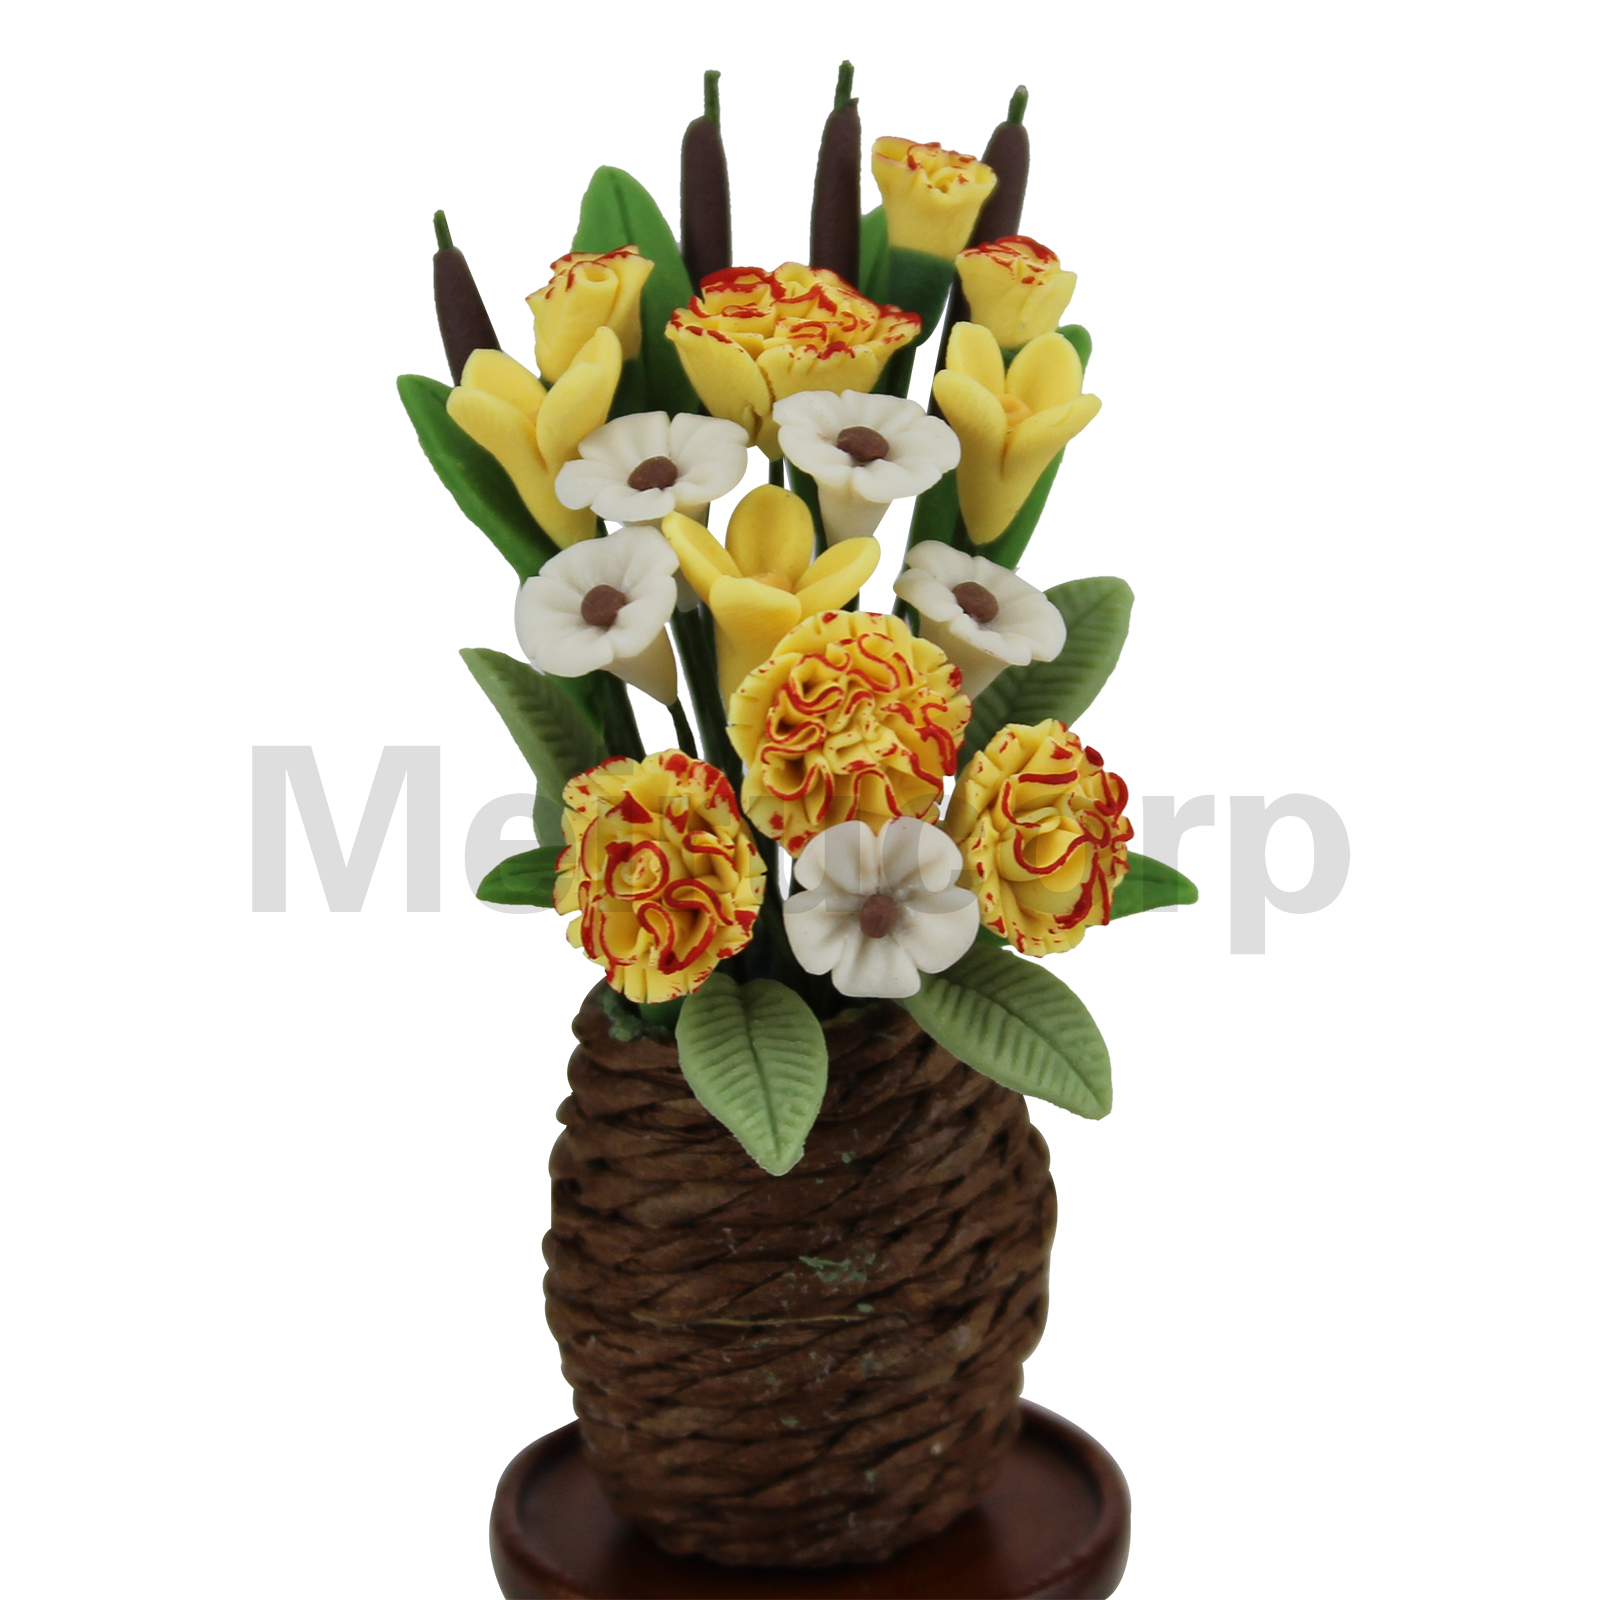 Miniature Dollhouse Hanging Basket With Yellow Flowers 1:12 Scale New